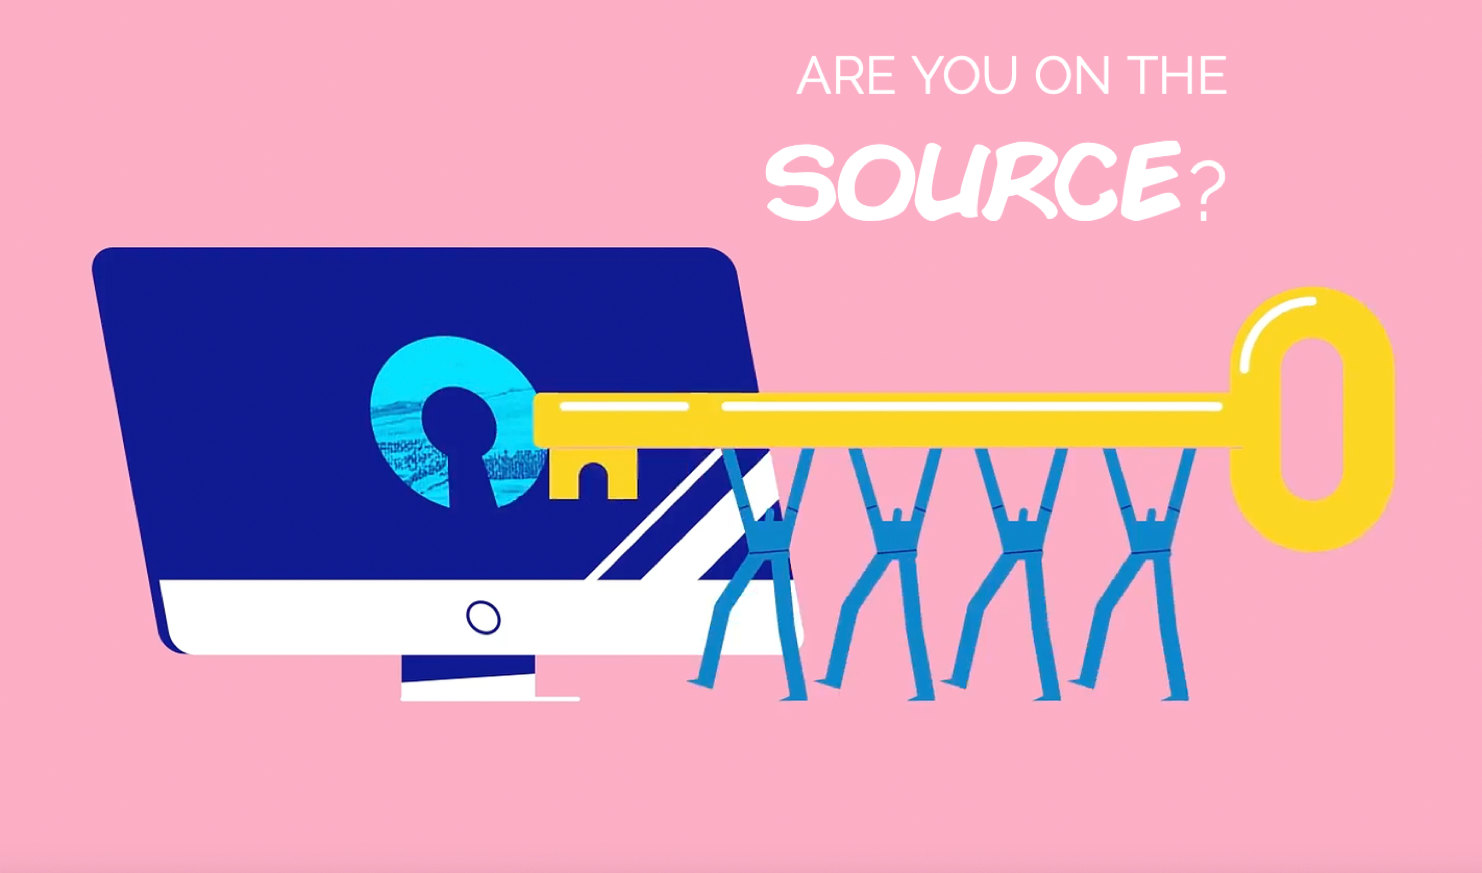 Are you on the source?